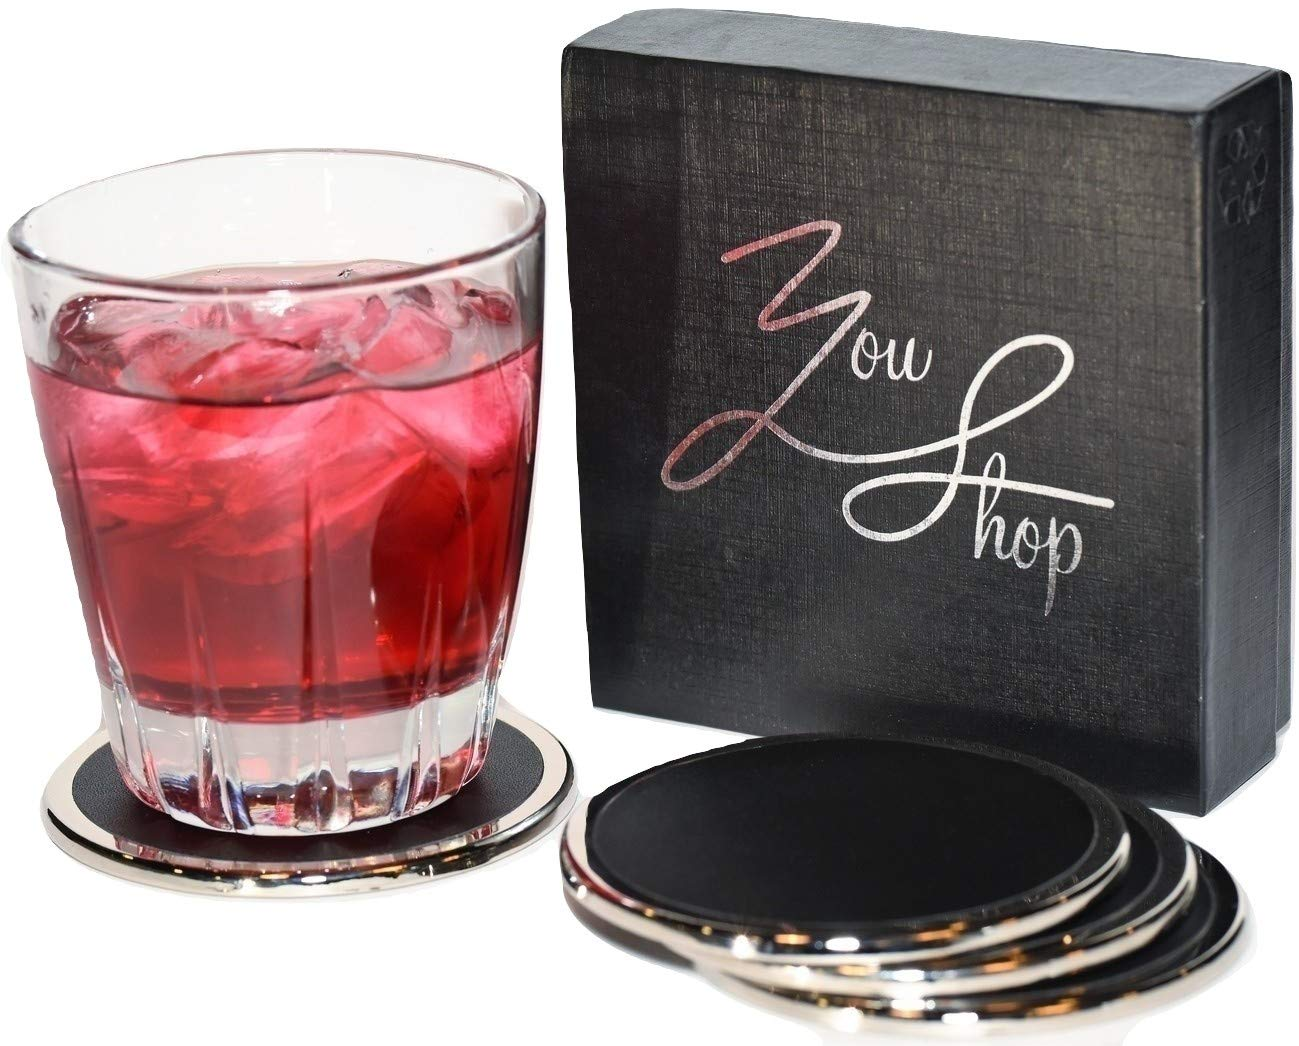 YouShop Luxury Coasters for Drinks - Premium Metal, Black Leather, Velvet Base | Contemporary and Clean Style, Modern Coaster Set for Living Room, Kitchen, or Office Cup Coasters | Protect Furniture by YouShop (Image #8)